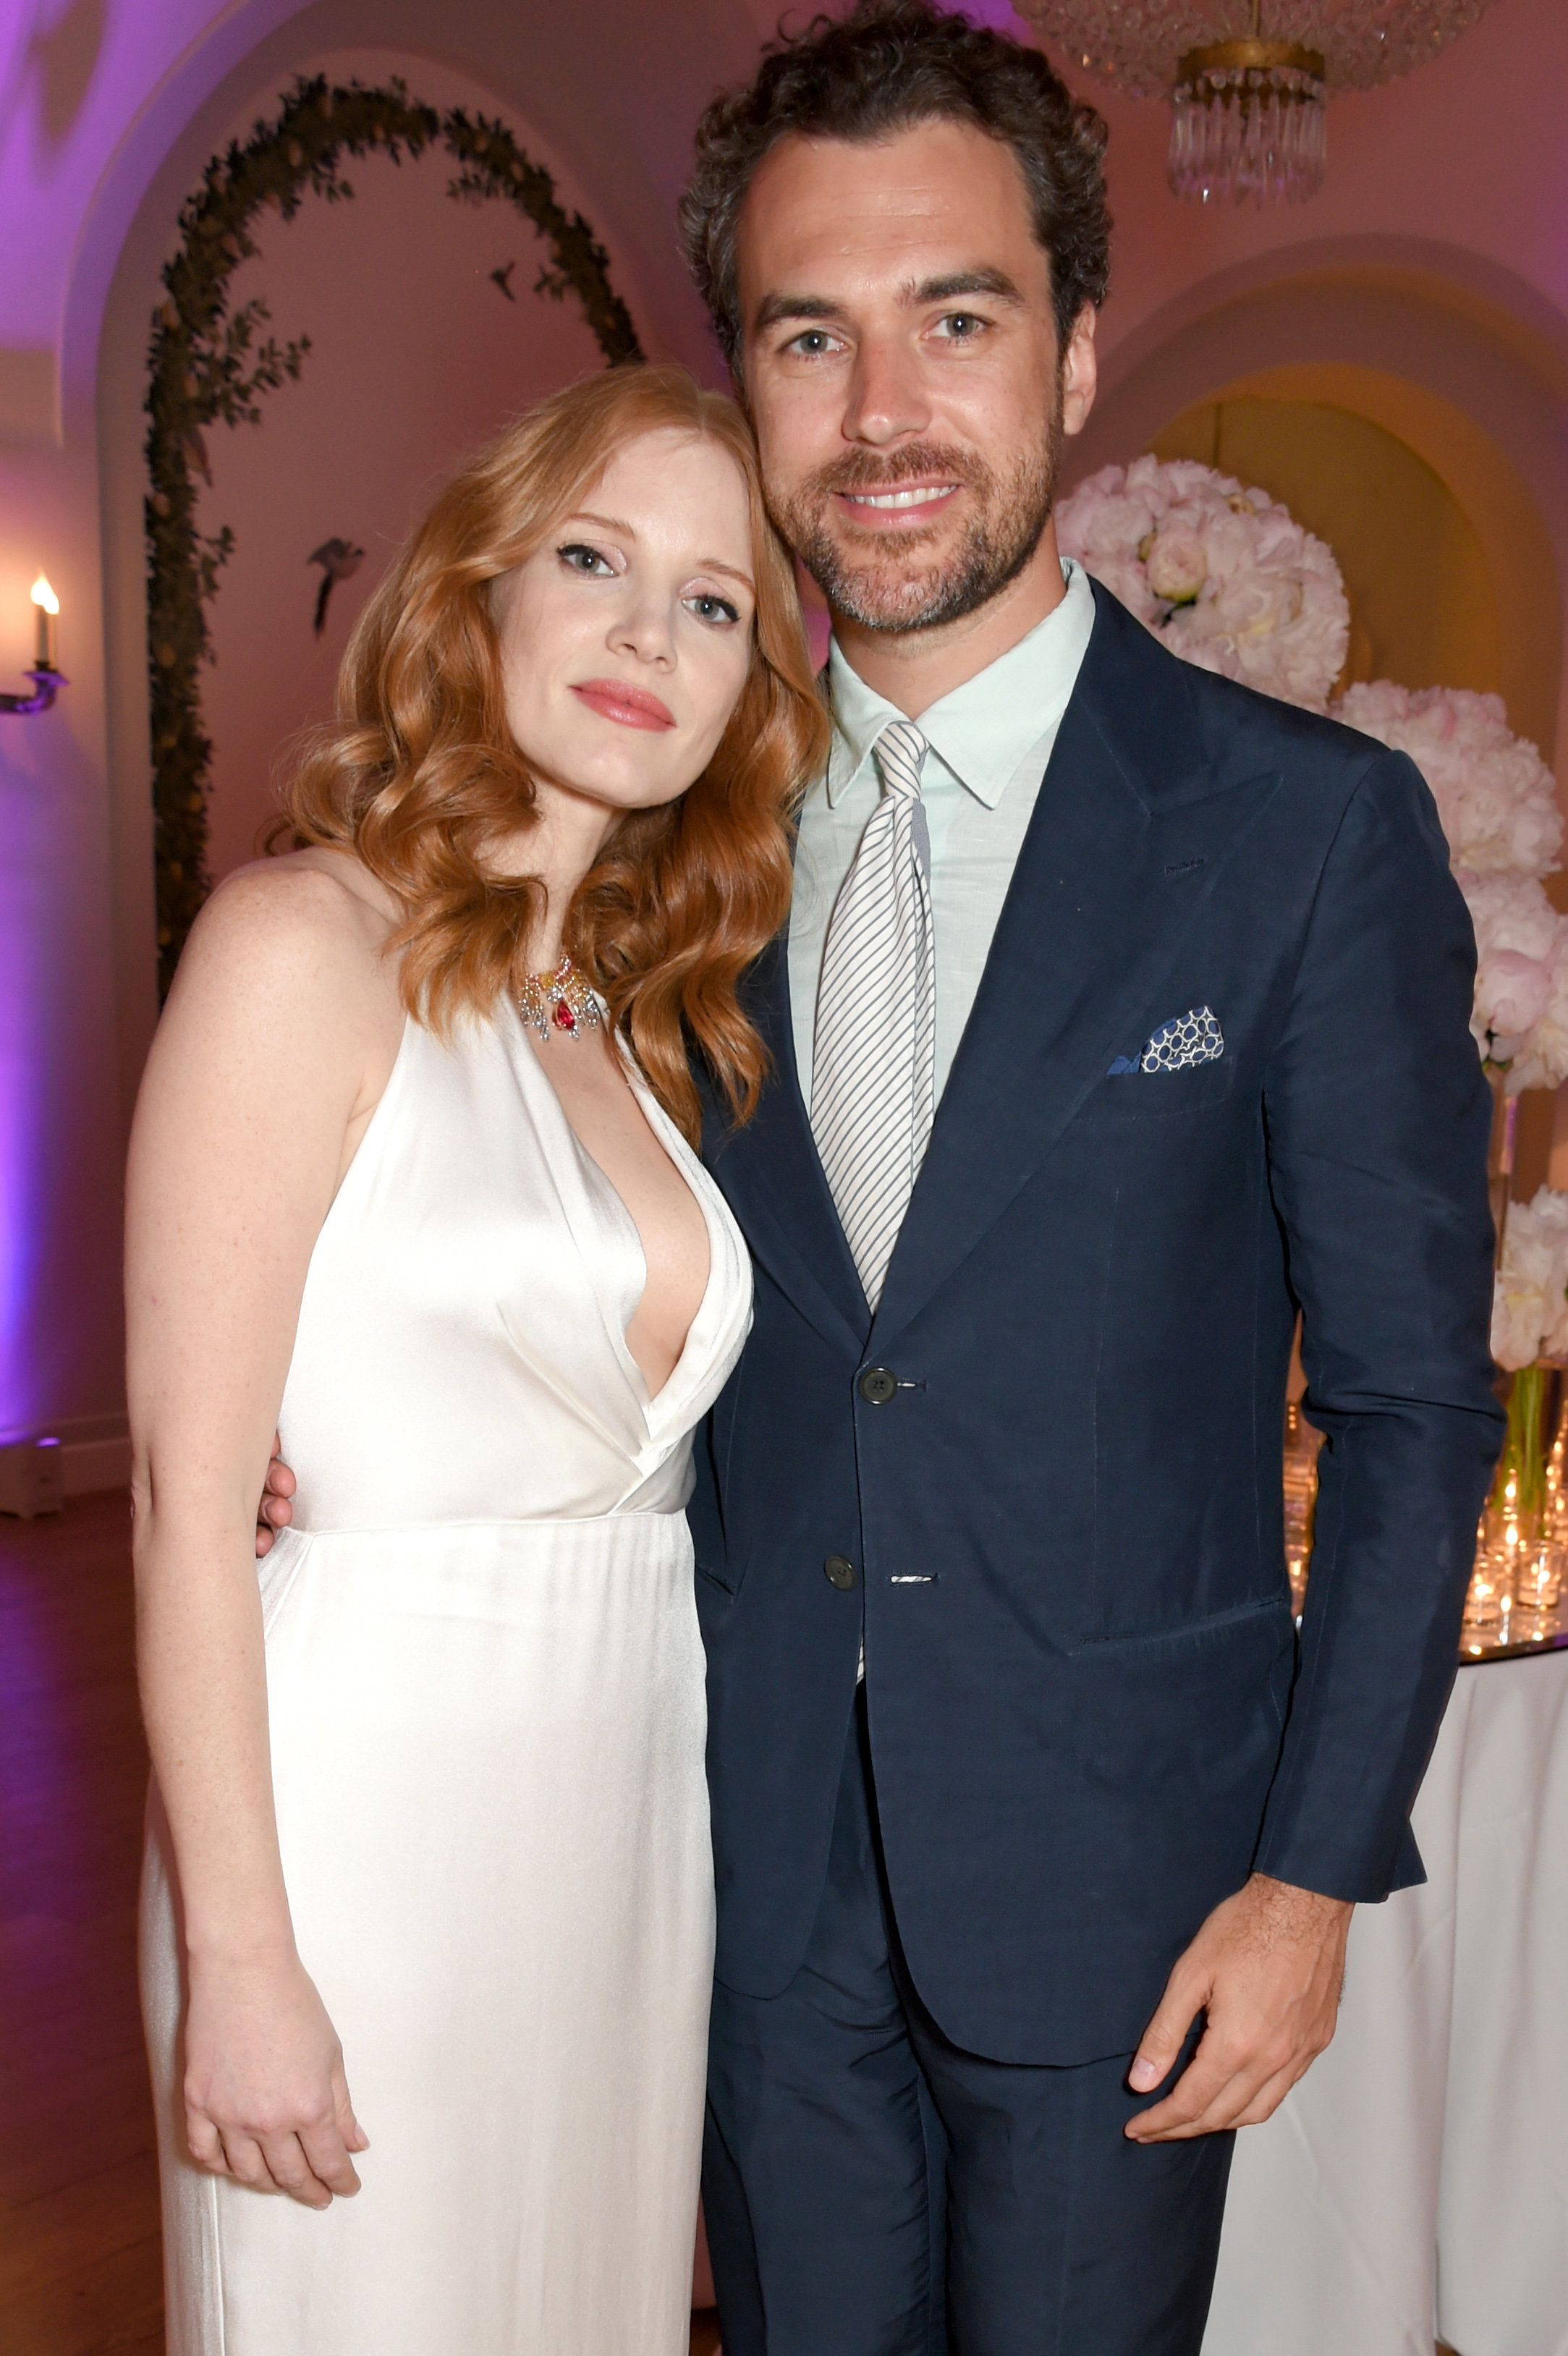 CAP D'ANTIBES, FRANCE - MAY 20:  Jessica Chastain (L) and Gian Luca Passi de Preposulo attend the Vanity Fair and HBO Dinner celebrating the Cannes Film Festival at Hotel du Cap-Eden-Roc on May 20, 2017 in Cap d'Antibes, France.  (Photo by David M Benett/Dave Benett / Getty Images for Vanity Fair)